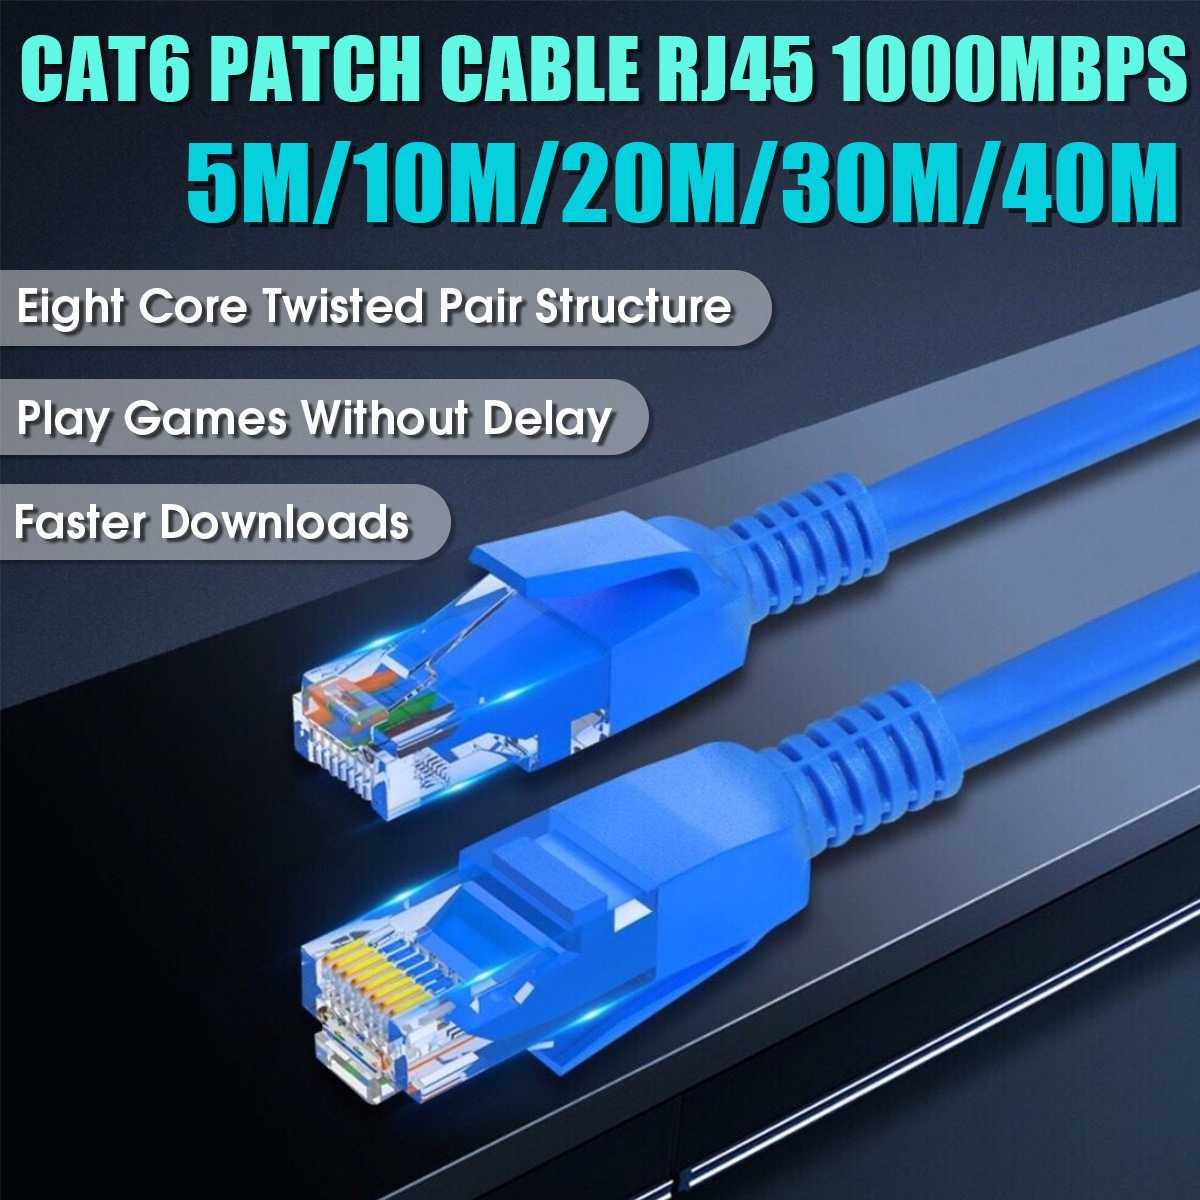 Ethernet Cable Lan Cable CAT6 UTP RJ45 Network Cable 5M/10M/20M/30M/40M 1000Mbps Patch Cord For Laptop Router RJ45 Network Cable